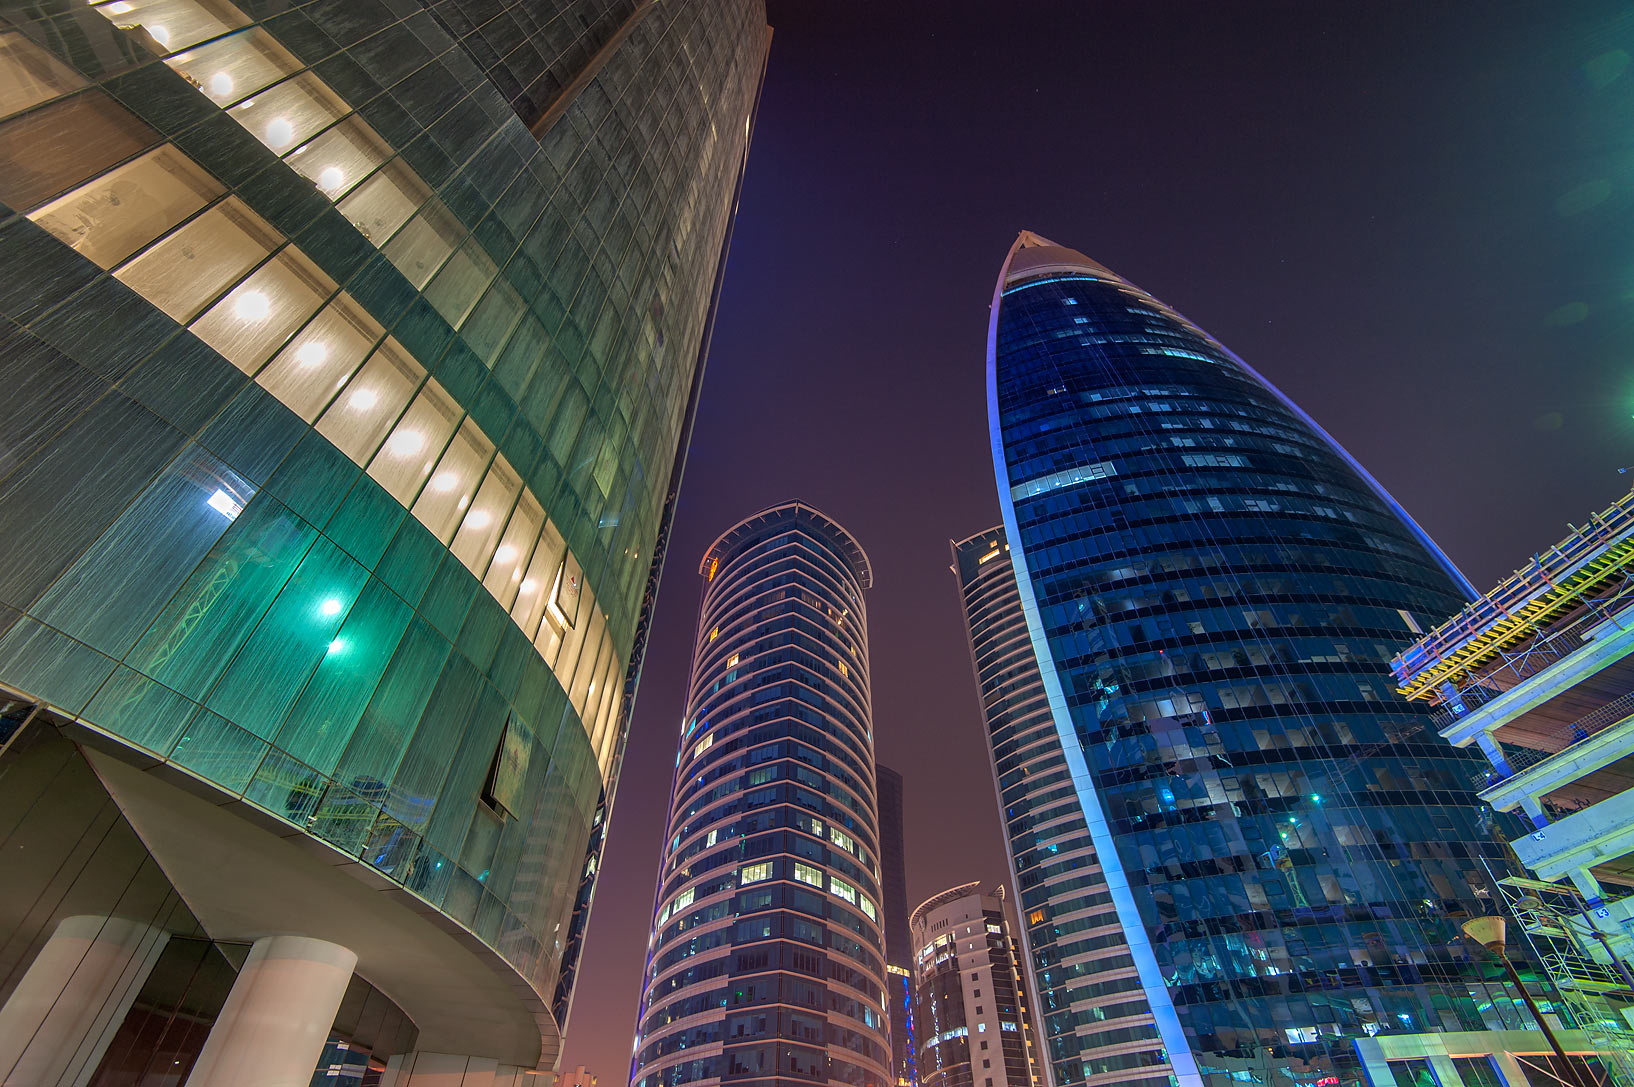 Nakheel and Woqod towers in West Bay. Doha, Qatar